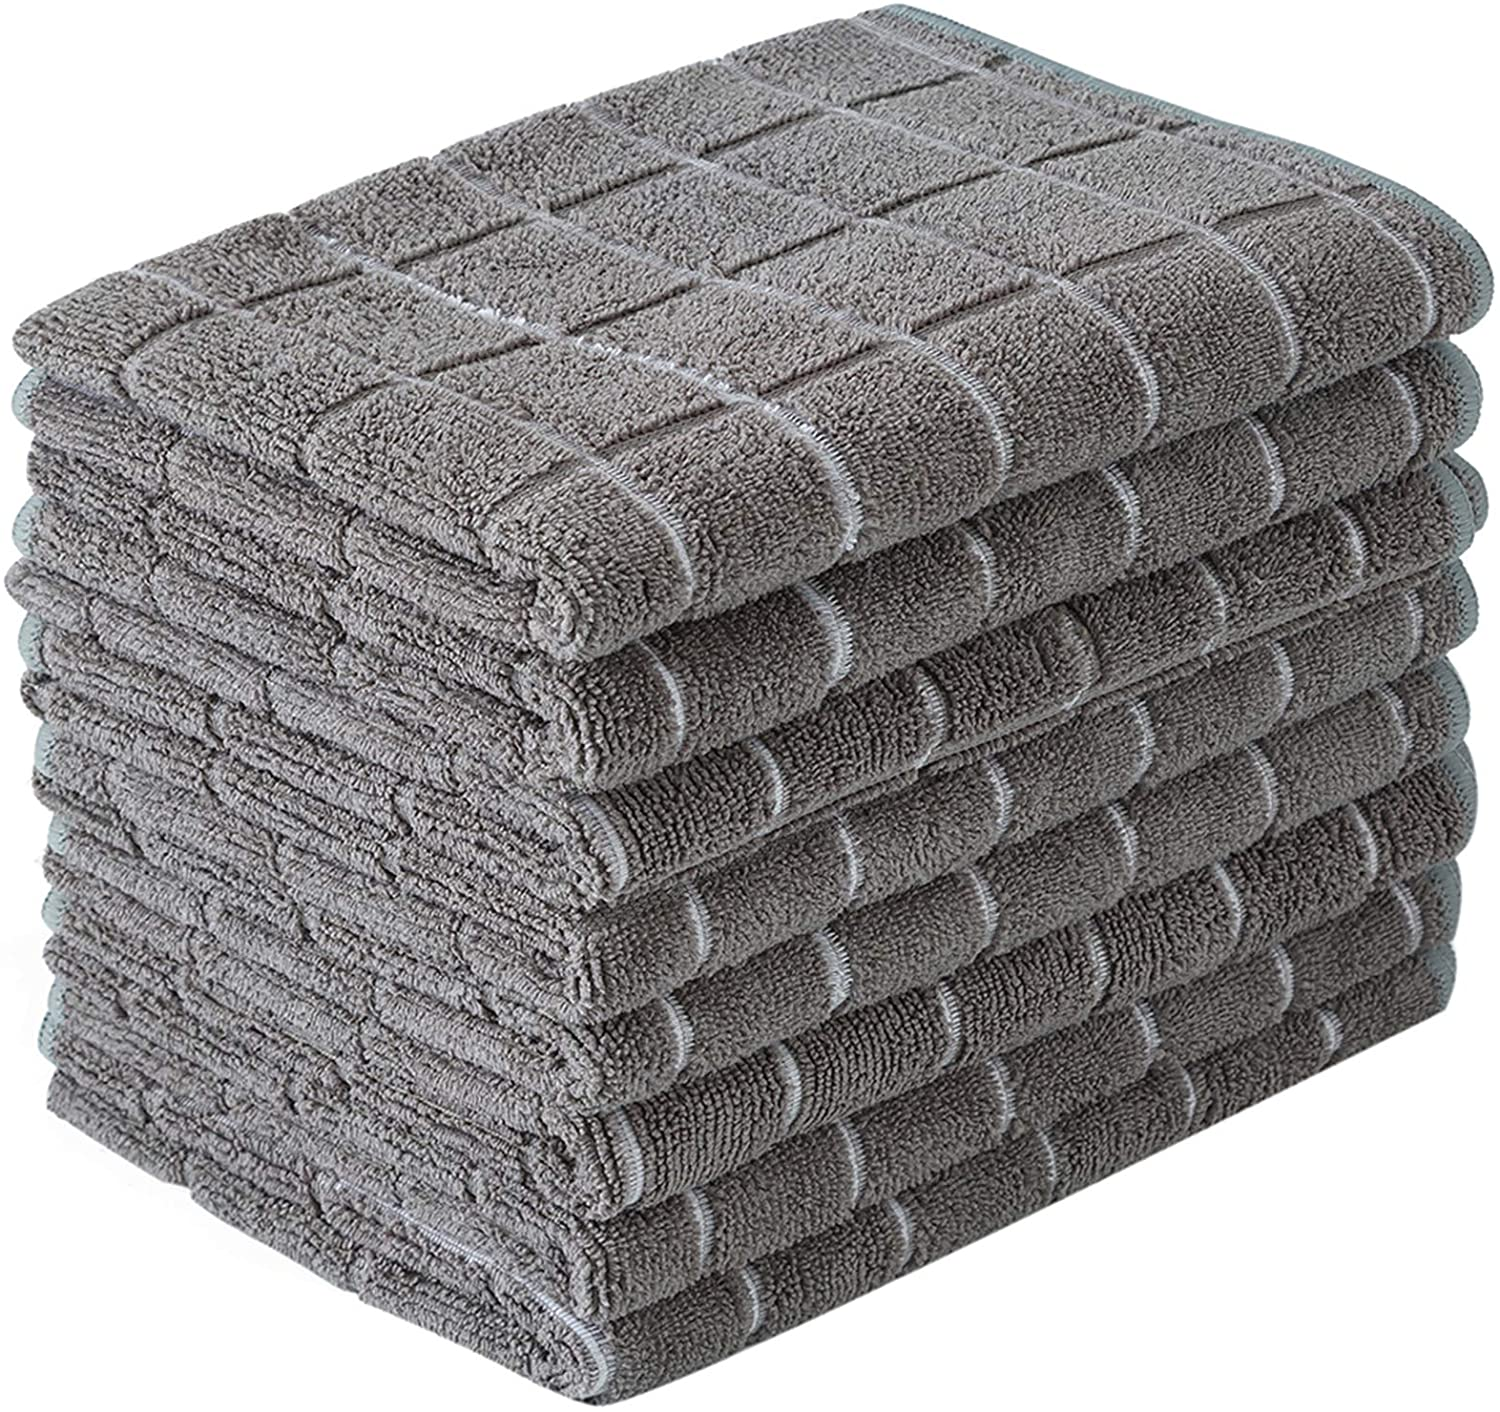 Microfiber Dish Towels - Soft, Super Absorbent and Lint Free Kitchen Towels - 8 Pack (Lattice Designed Gray Colors) - 26 x 18 Inch: Home & Kitchen